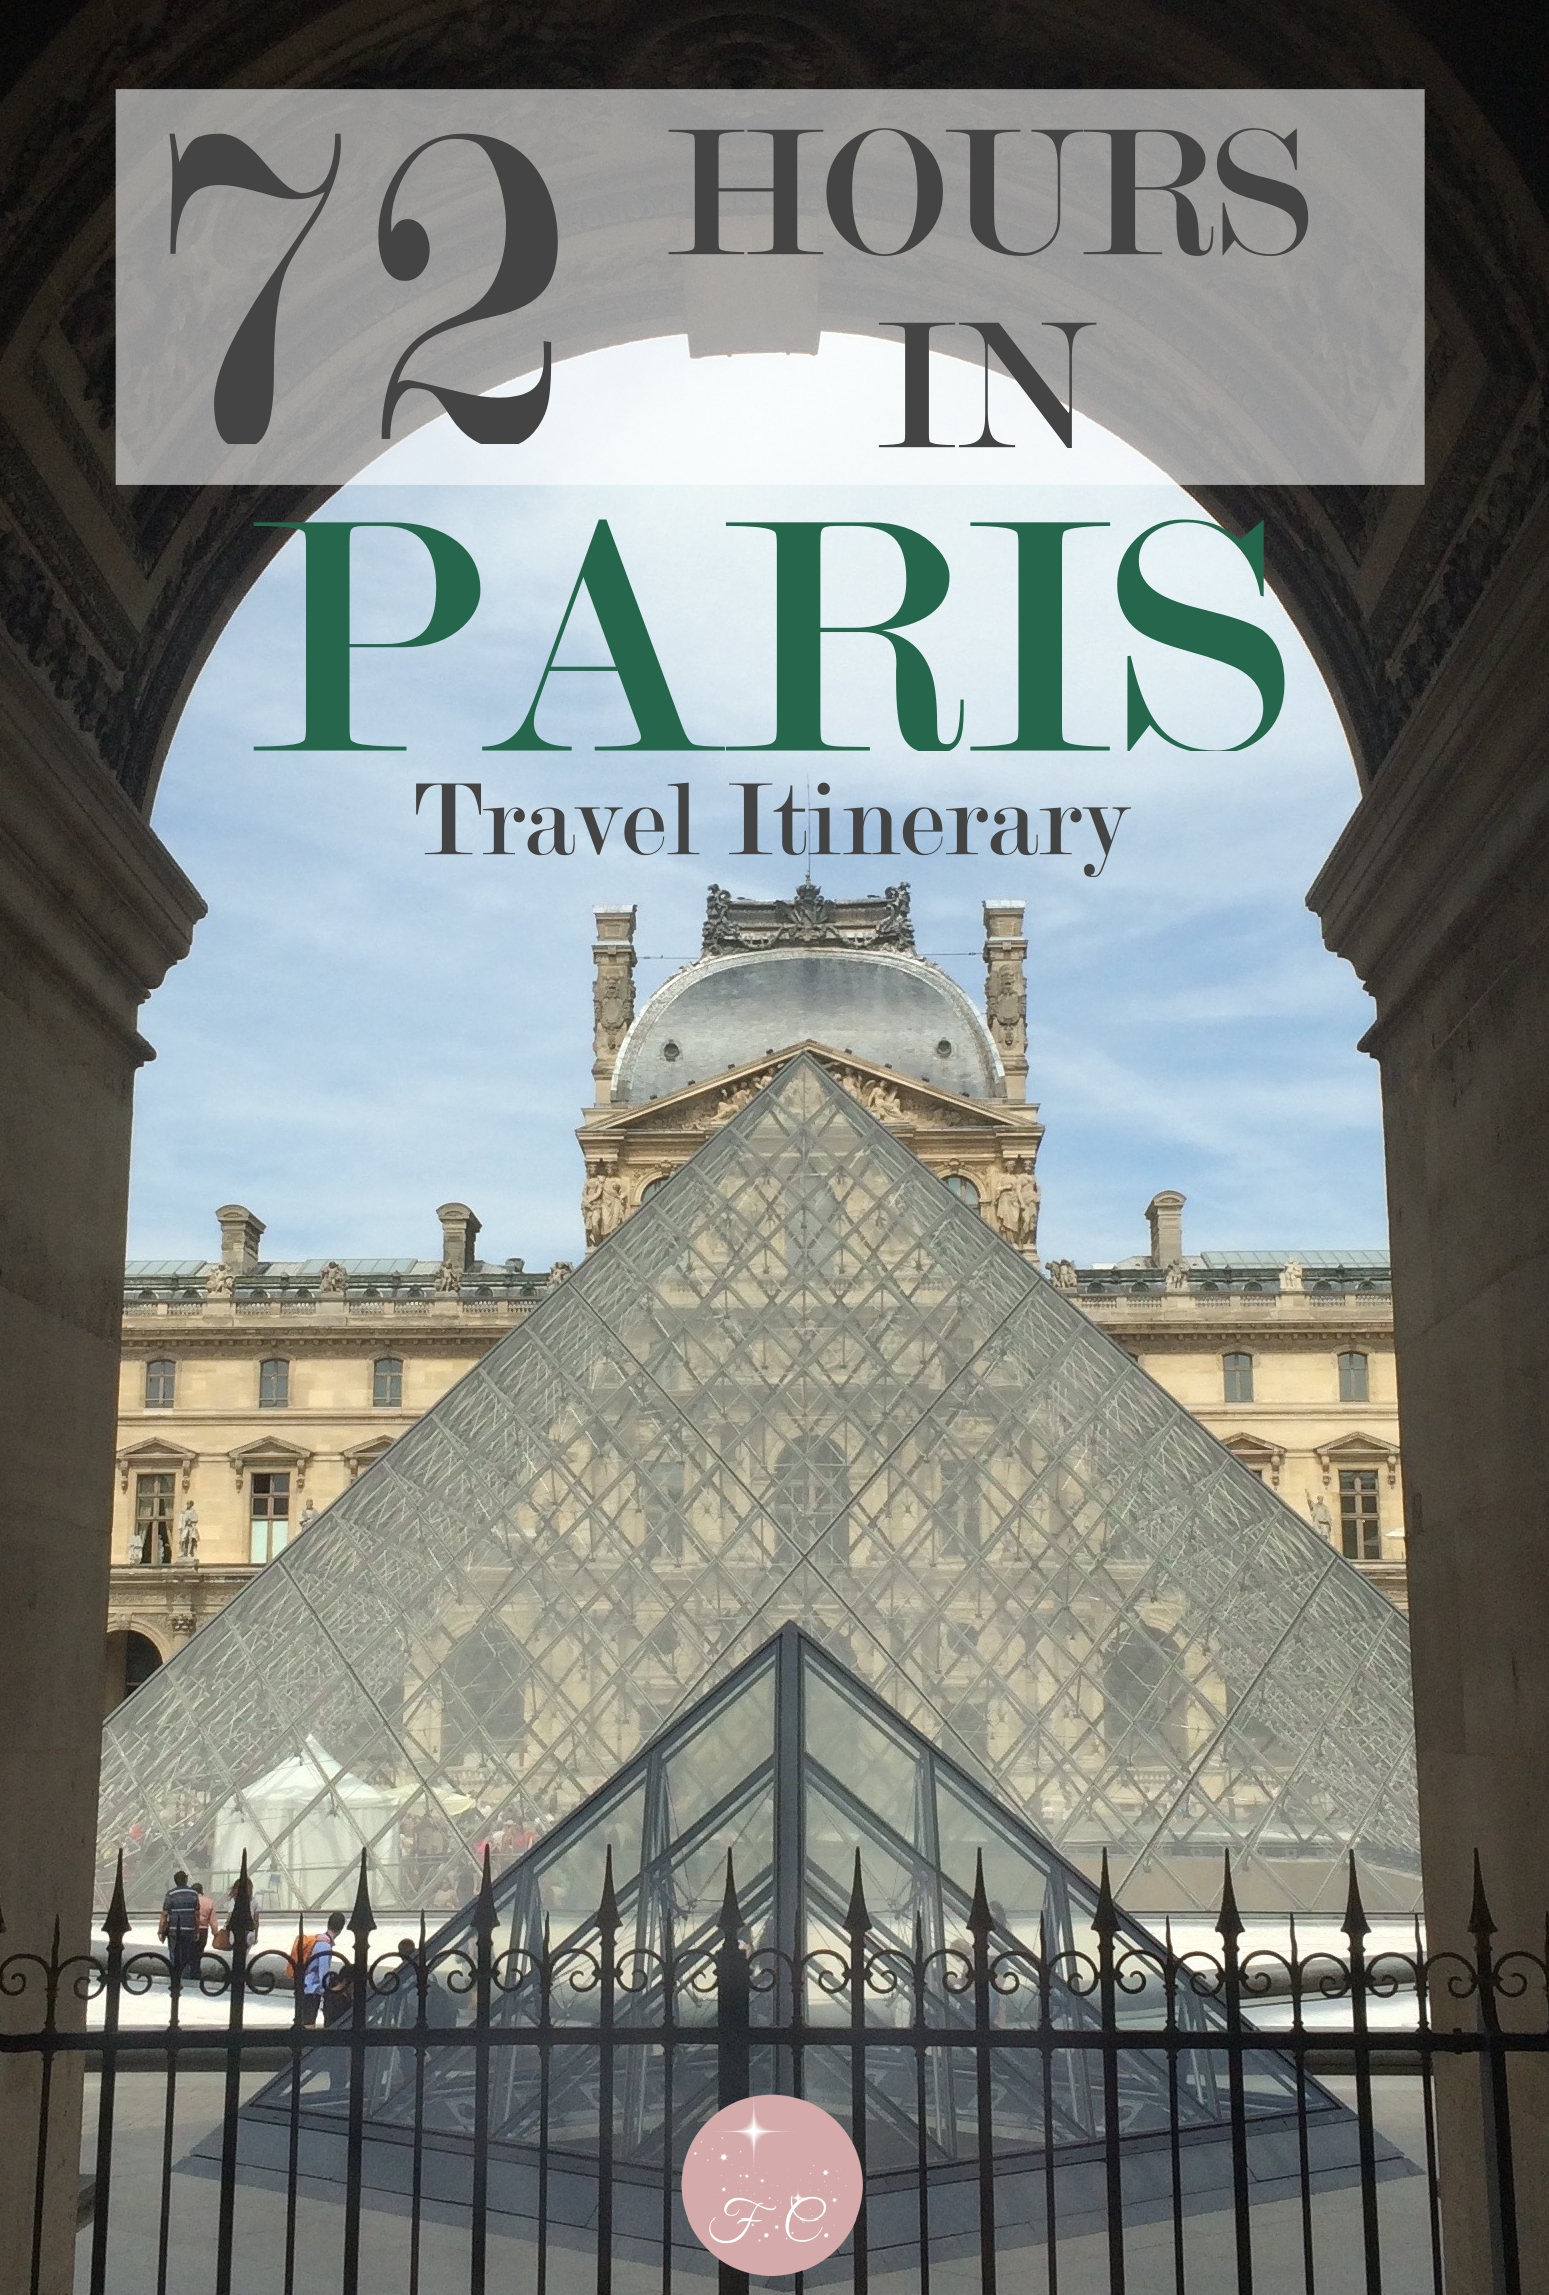 72 Hours In Paris, France - Travel Itinerary